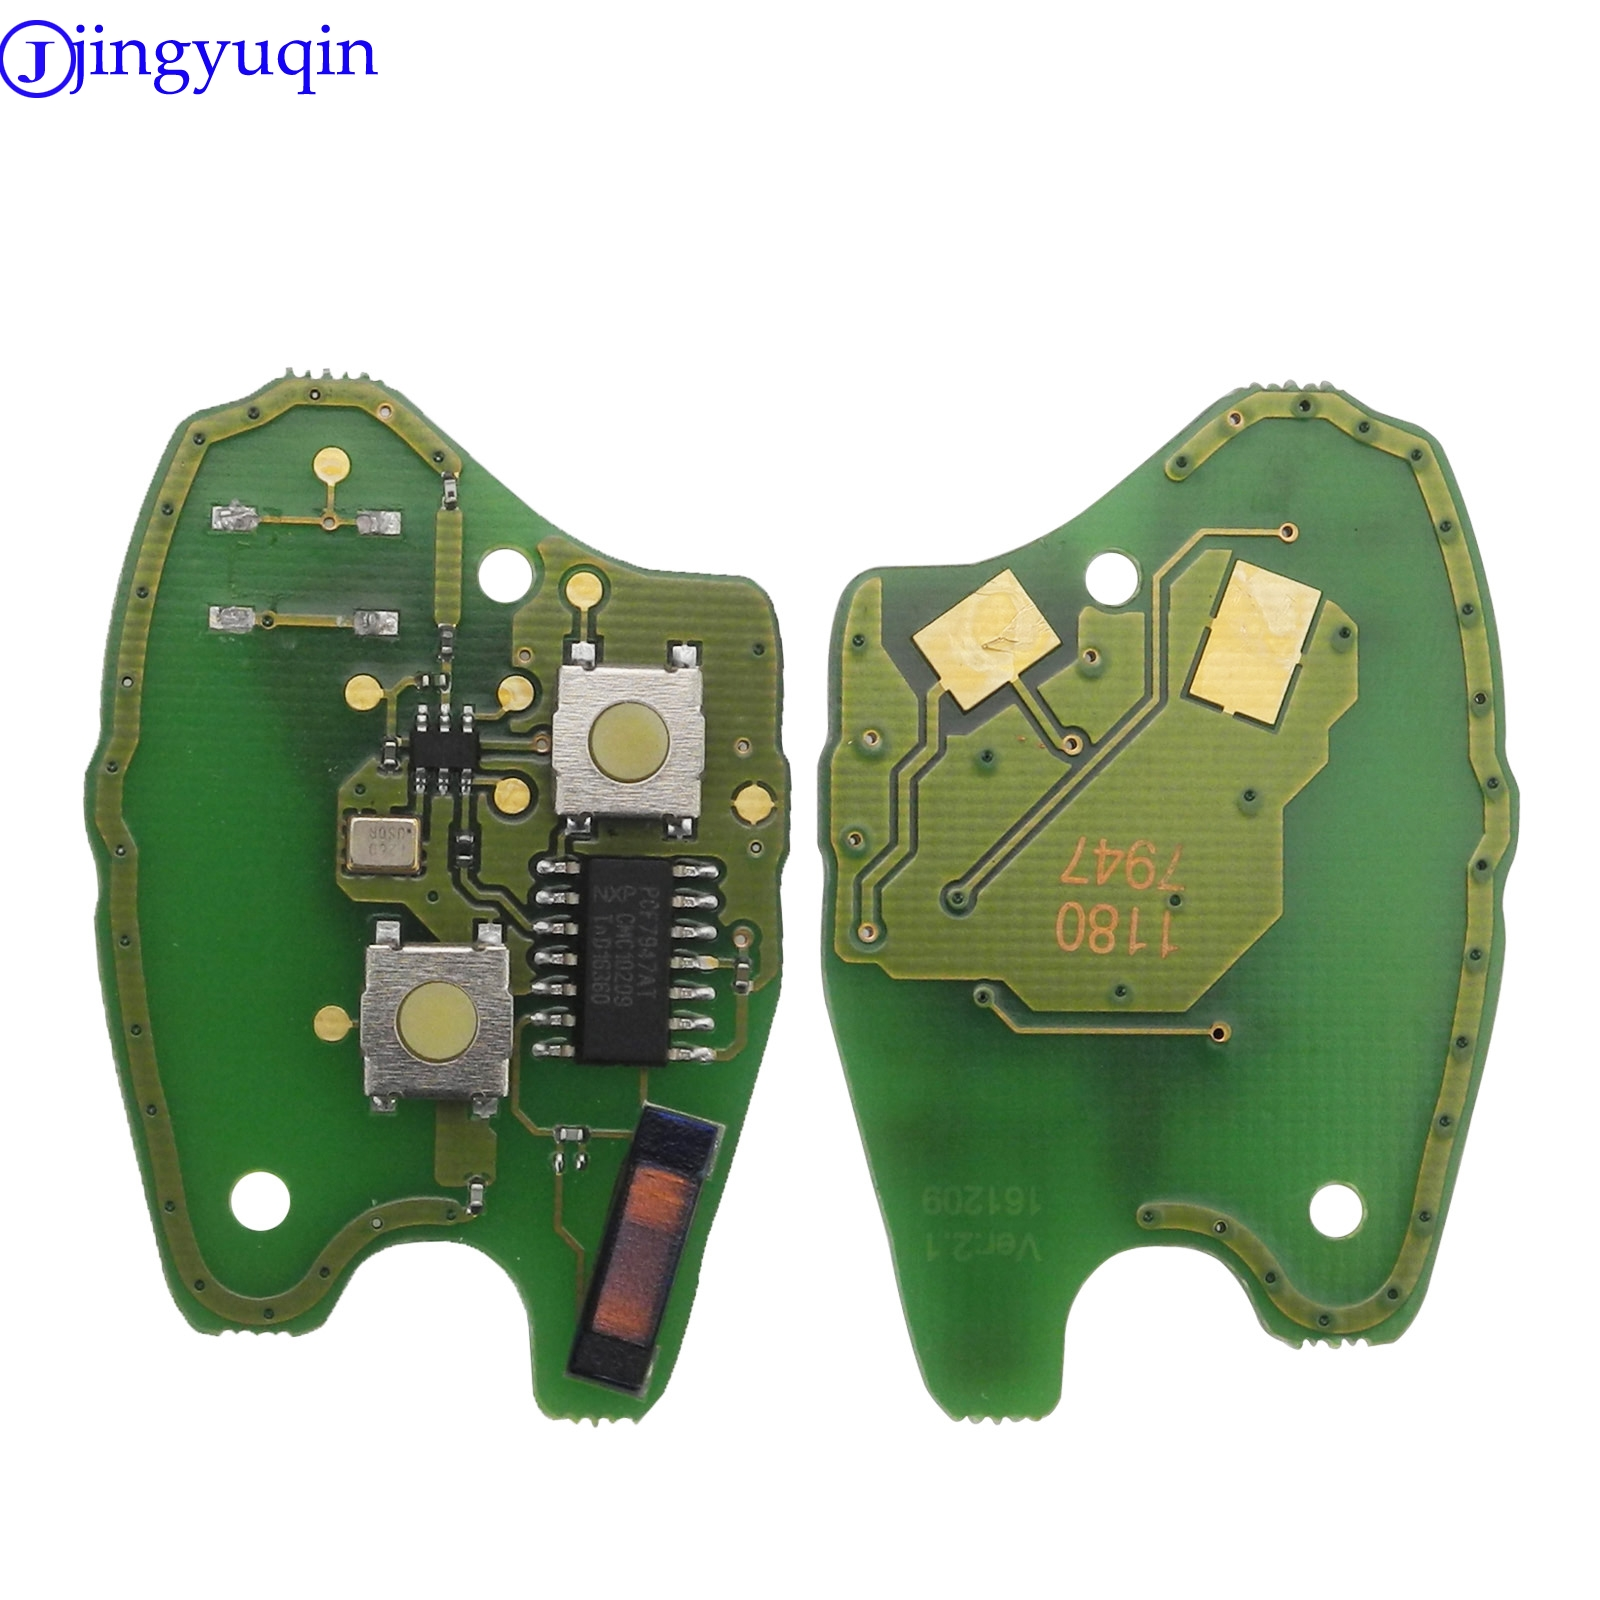 Jingyuqin 2/3BTN Car Remote Key Circuit Board Suit For Renault Clio Scenic Kangoo Megane PCF7946 / PCF7947 Chip